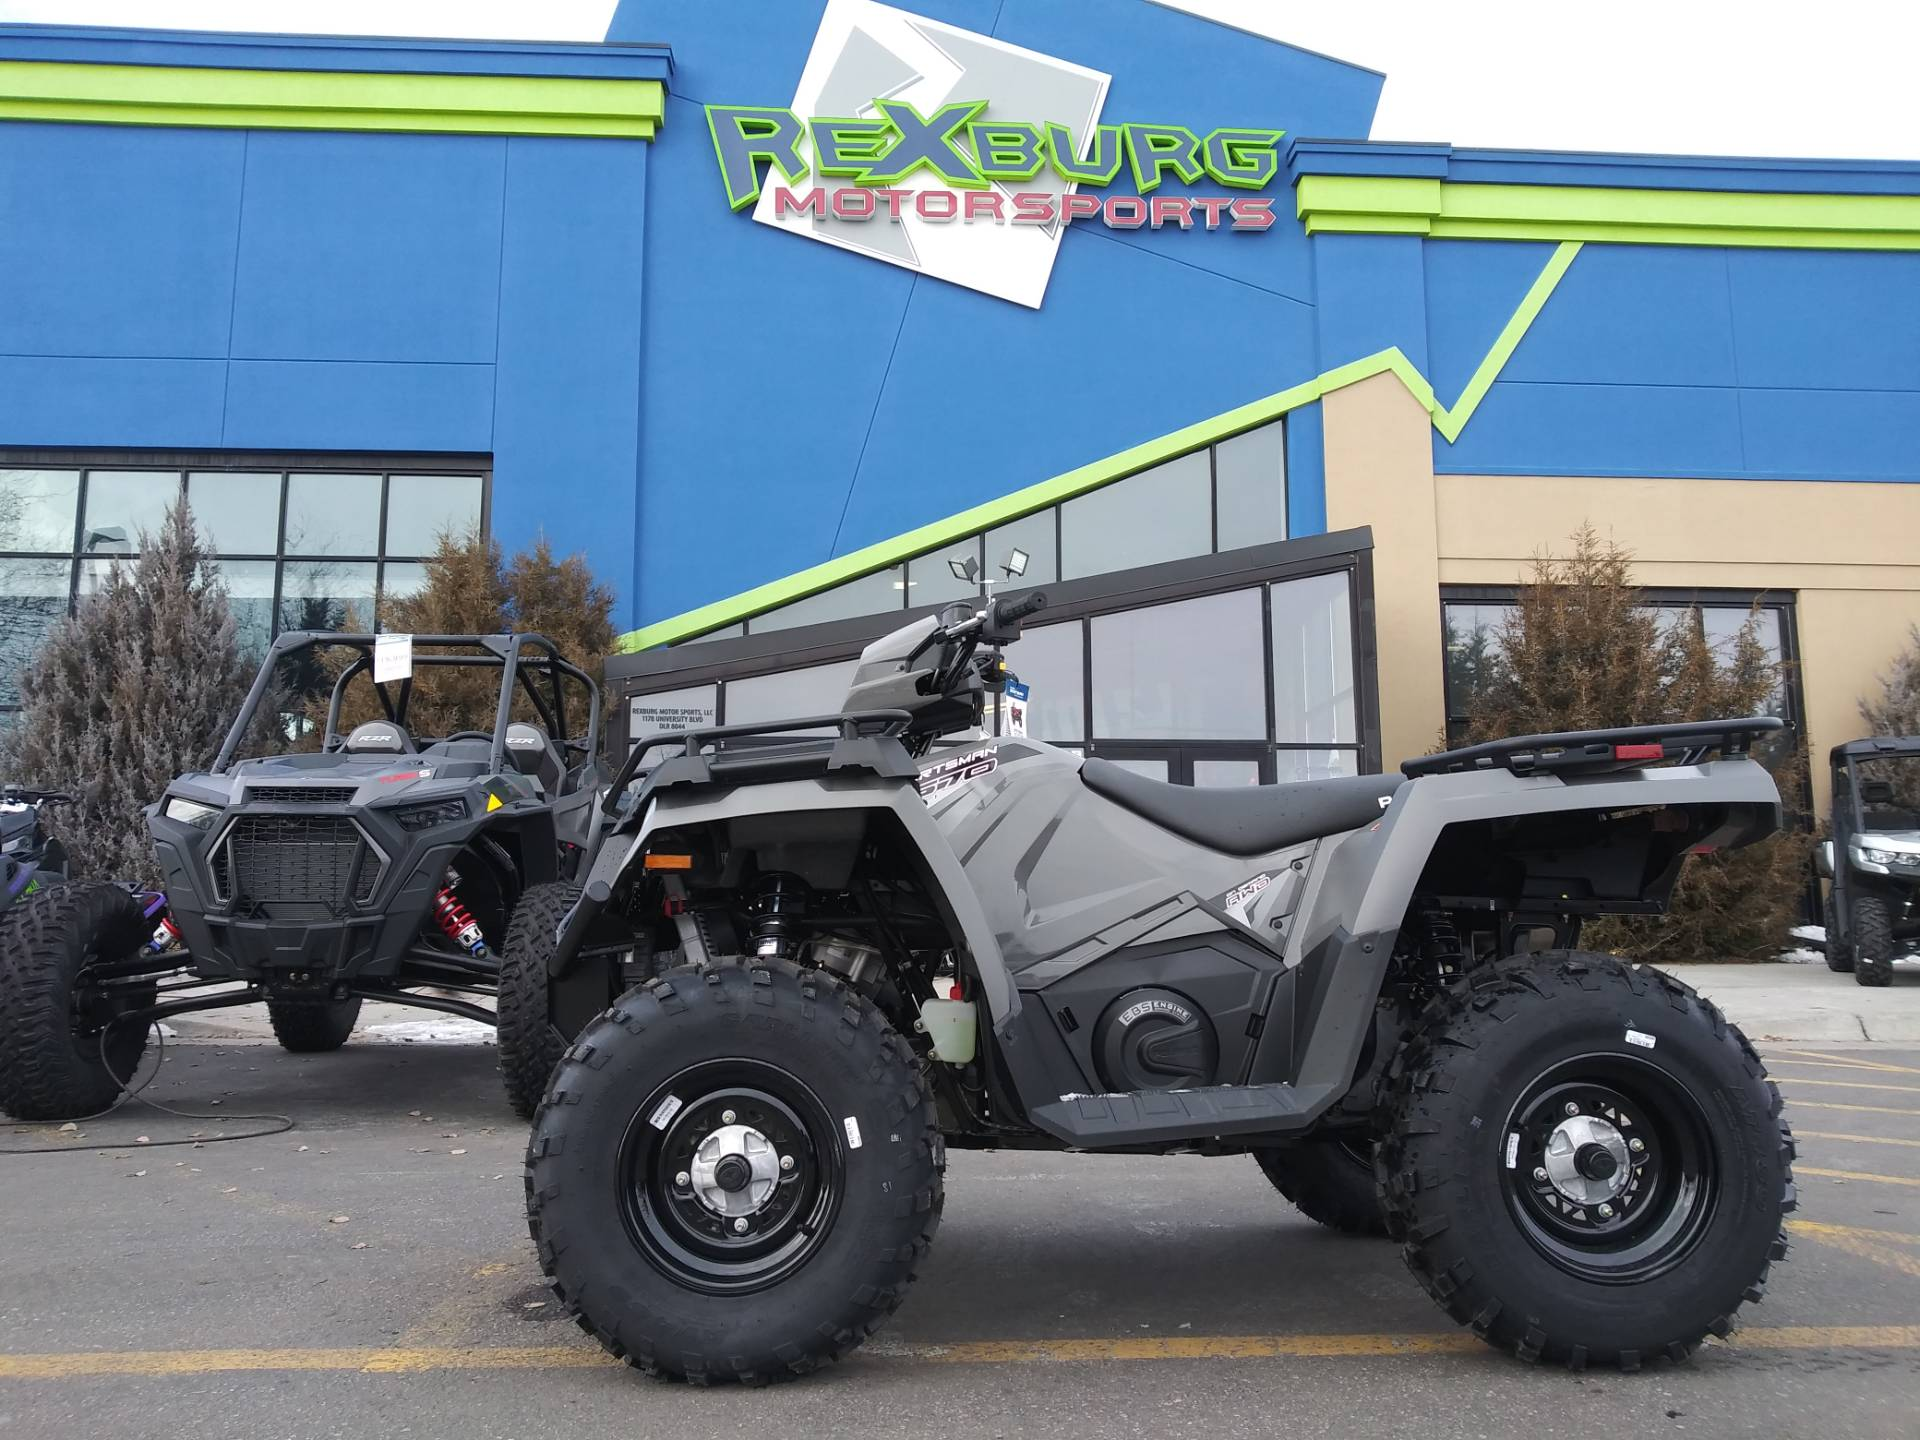 2020 Polaris Sportsman 570 Utility Package in Rexburg, Idaho - Photo 1